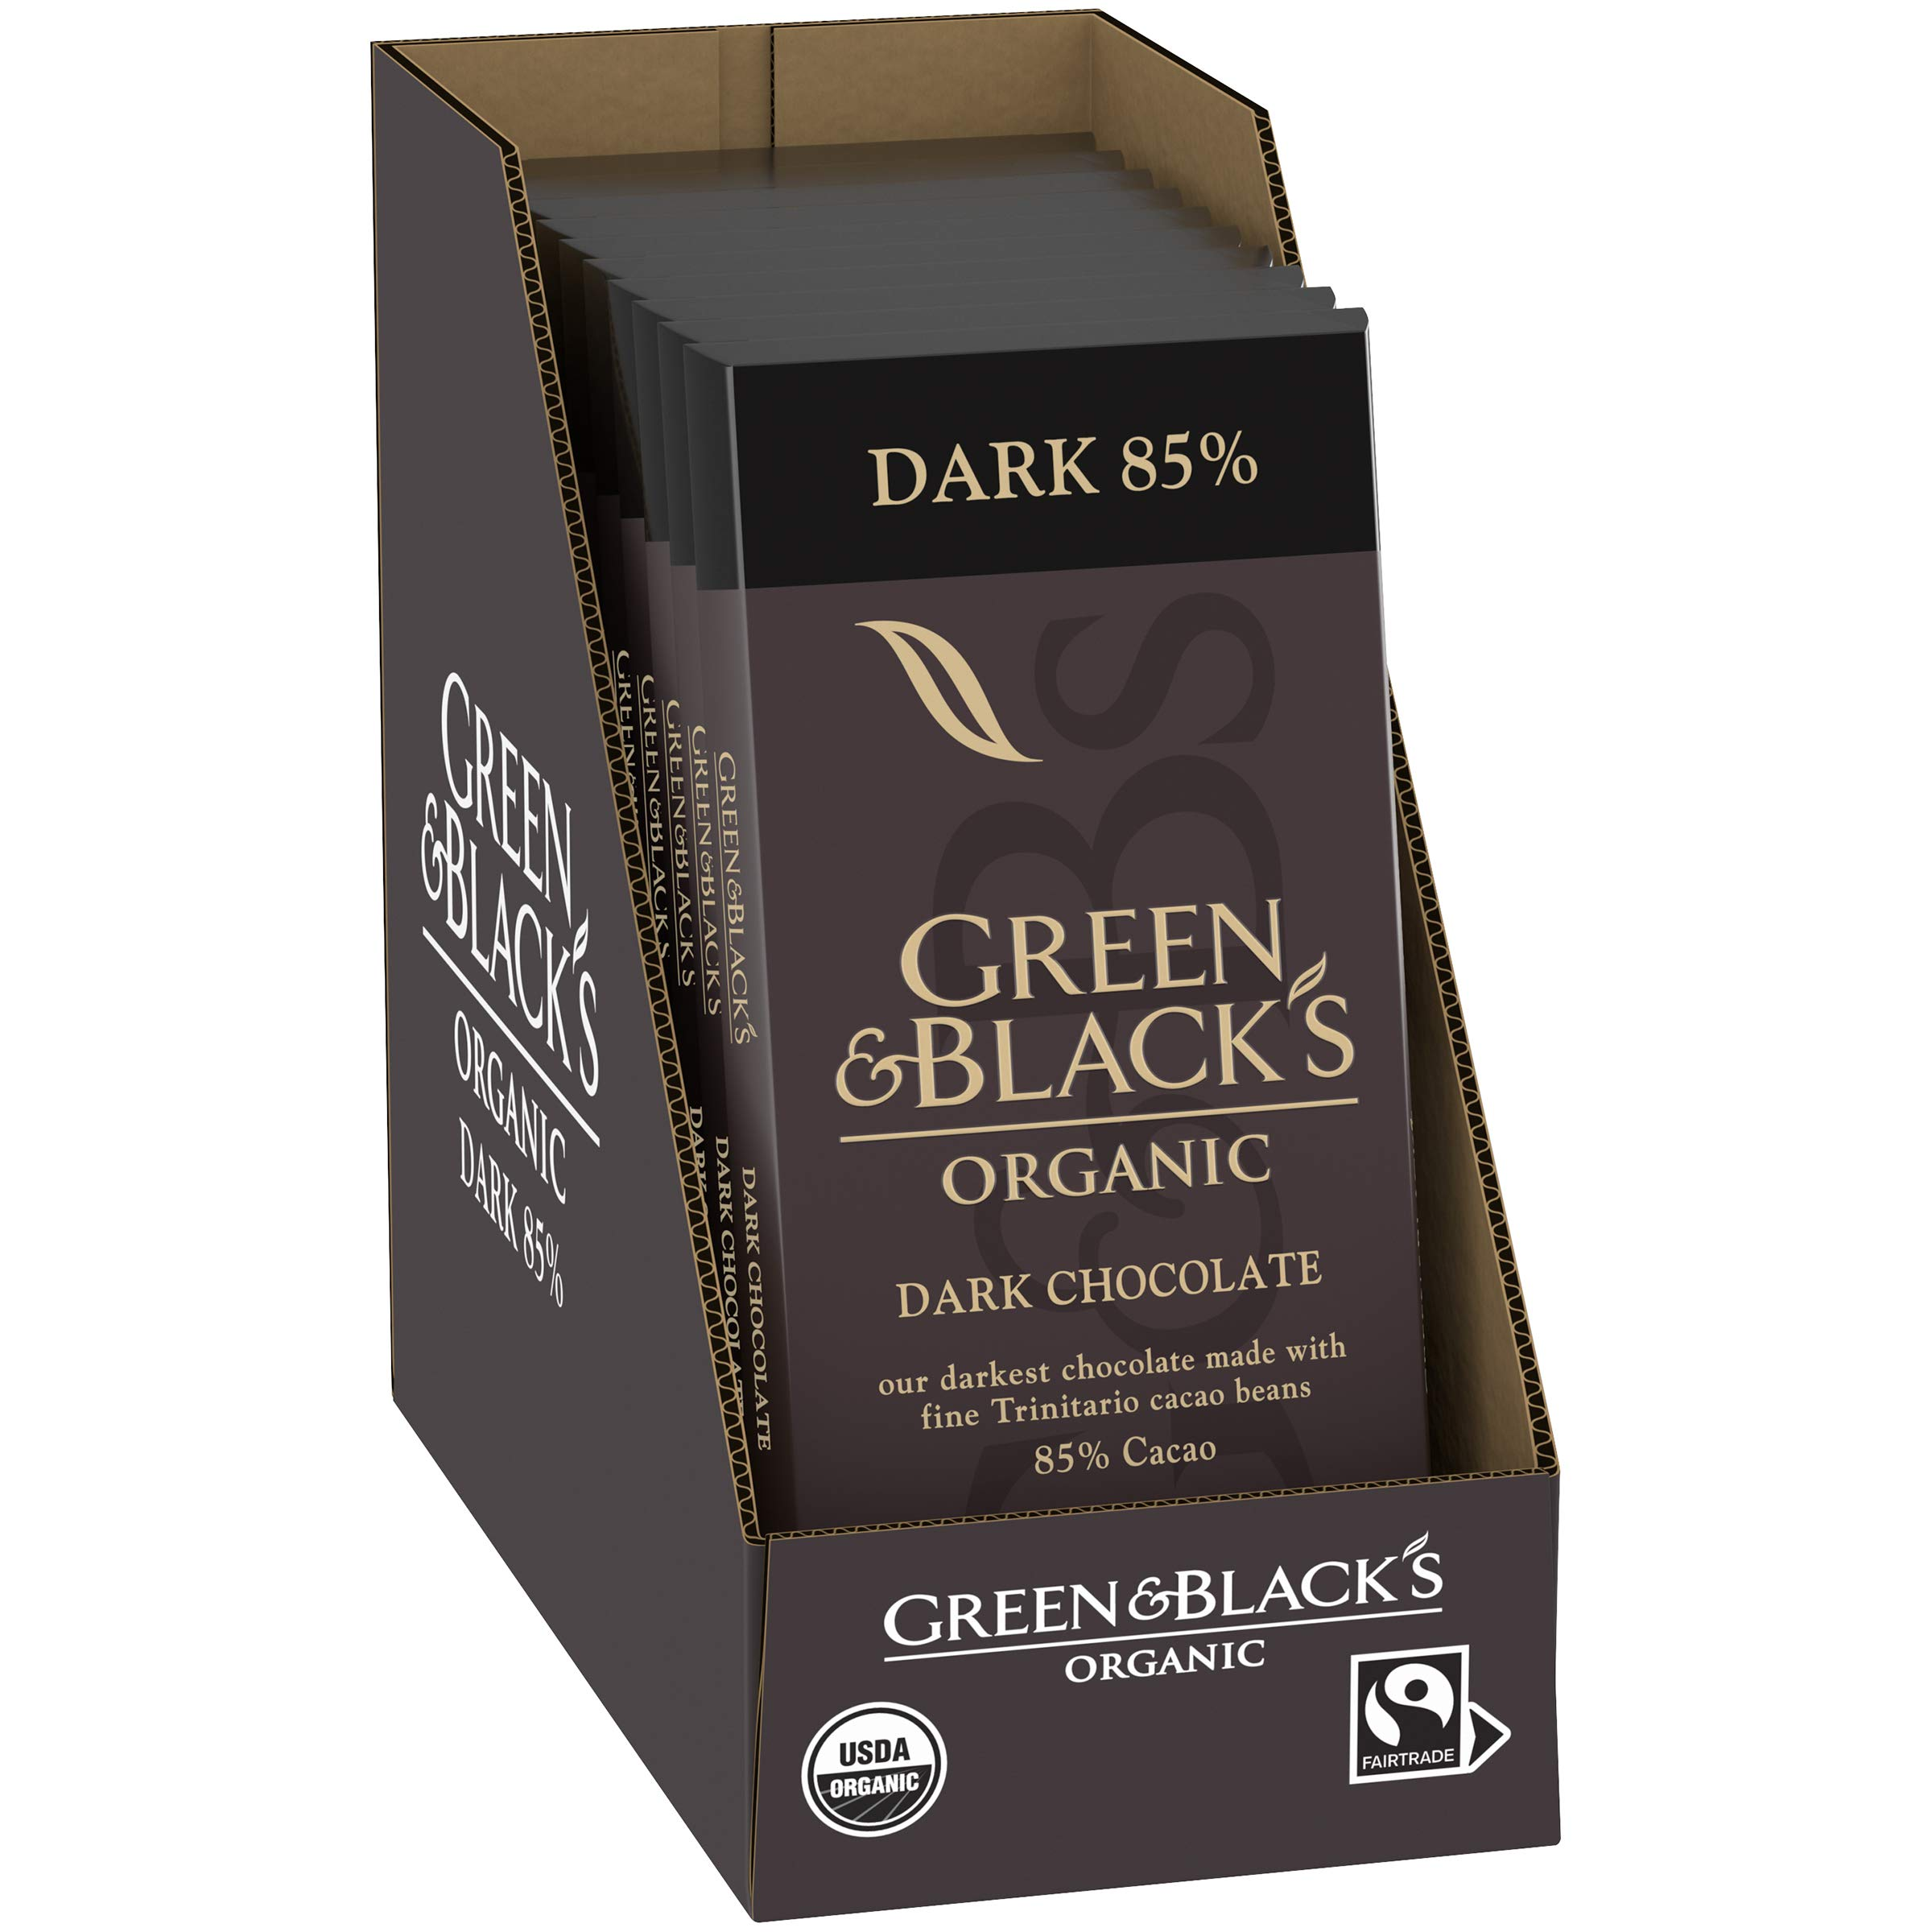 Green & Black's Organic Chocolate, Dark Chocolate 85% Cacao, 10Count by Green & Black's